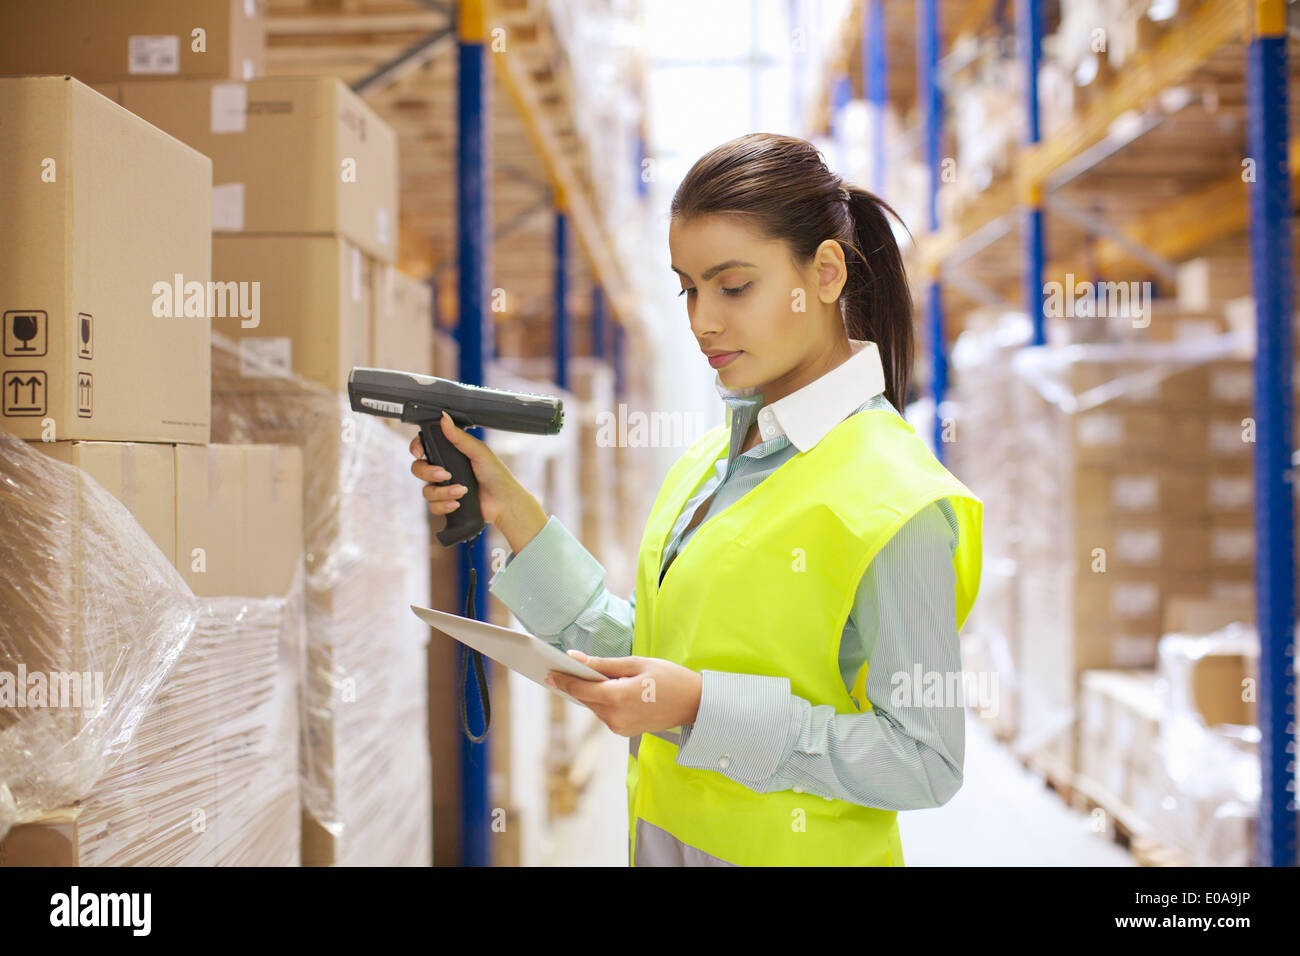 Female warehouse worker using barcode reader - Stock Image